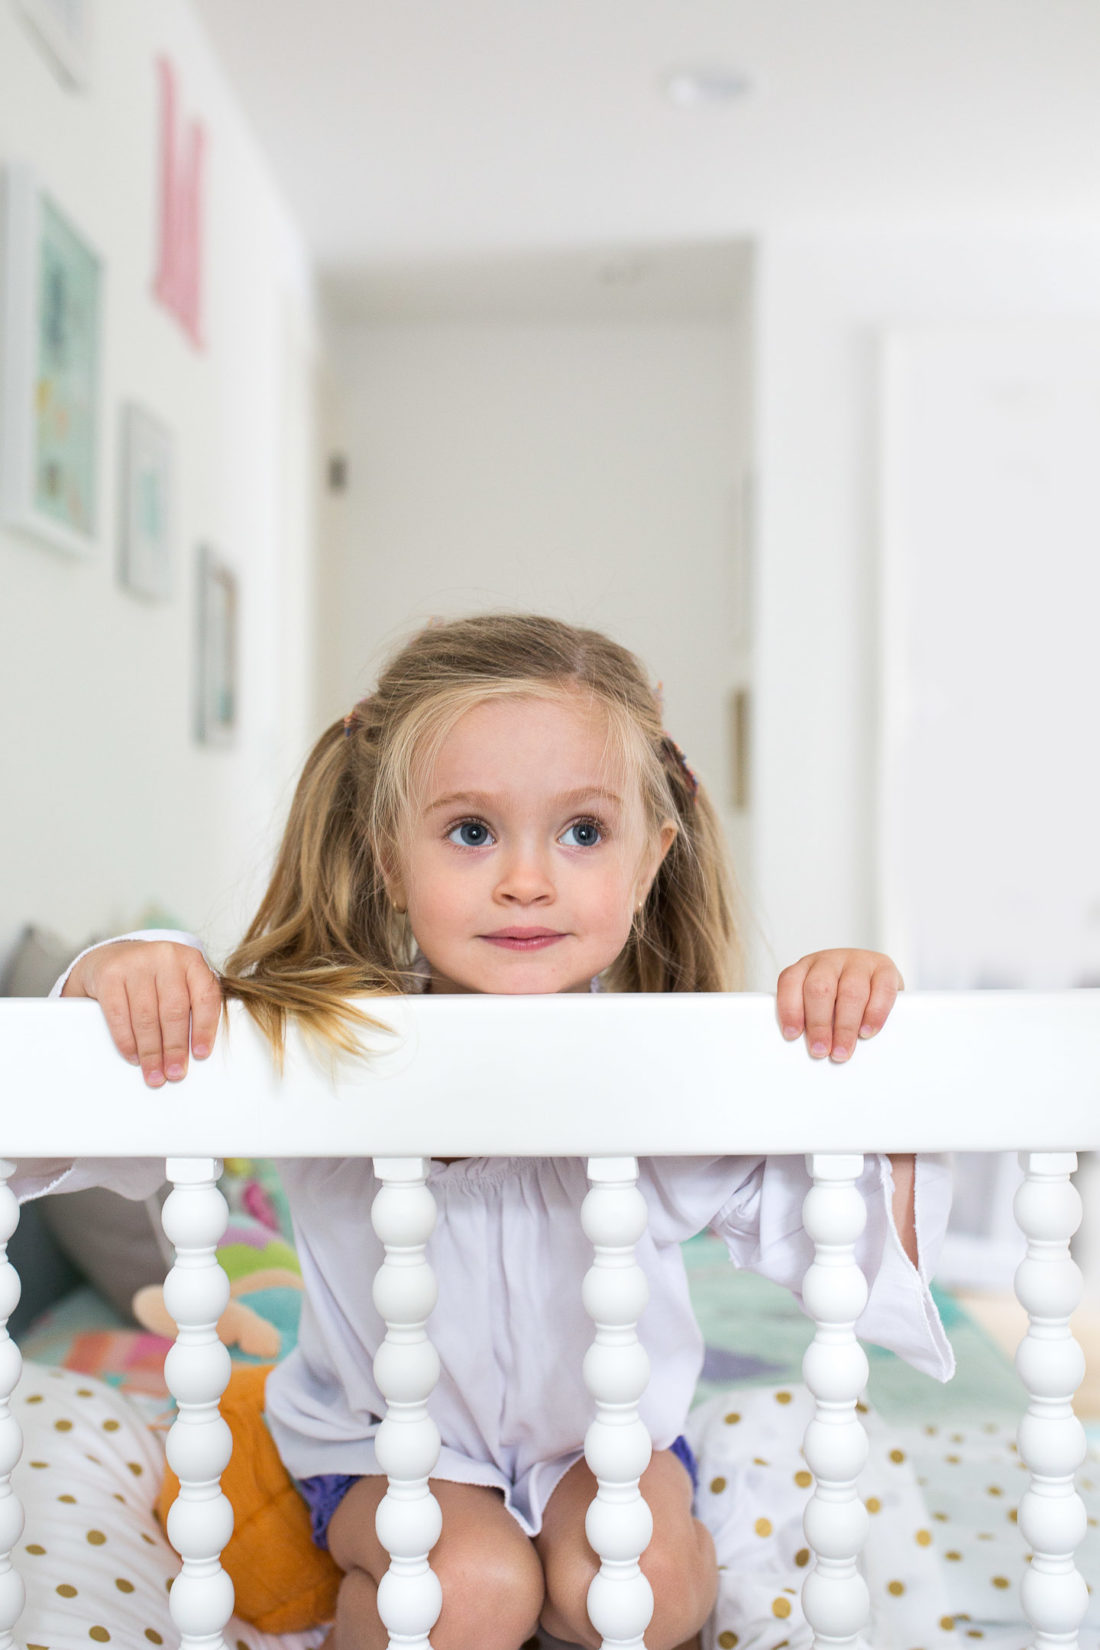 Marlowe Martino peeks over the edge of her Incy Interiors Big Girl bed